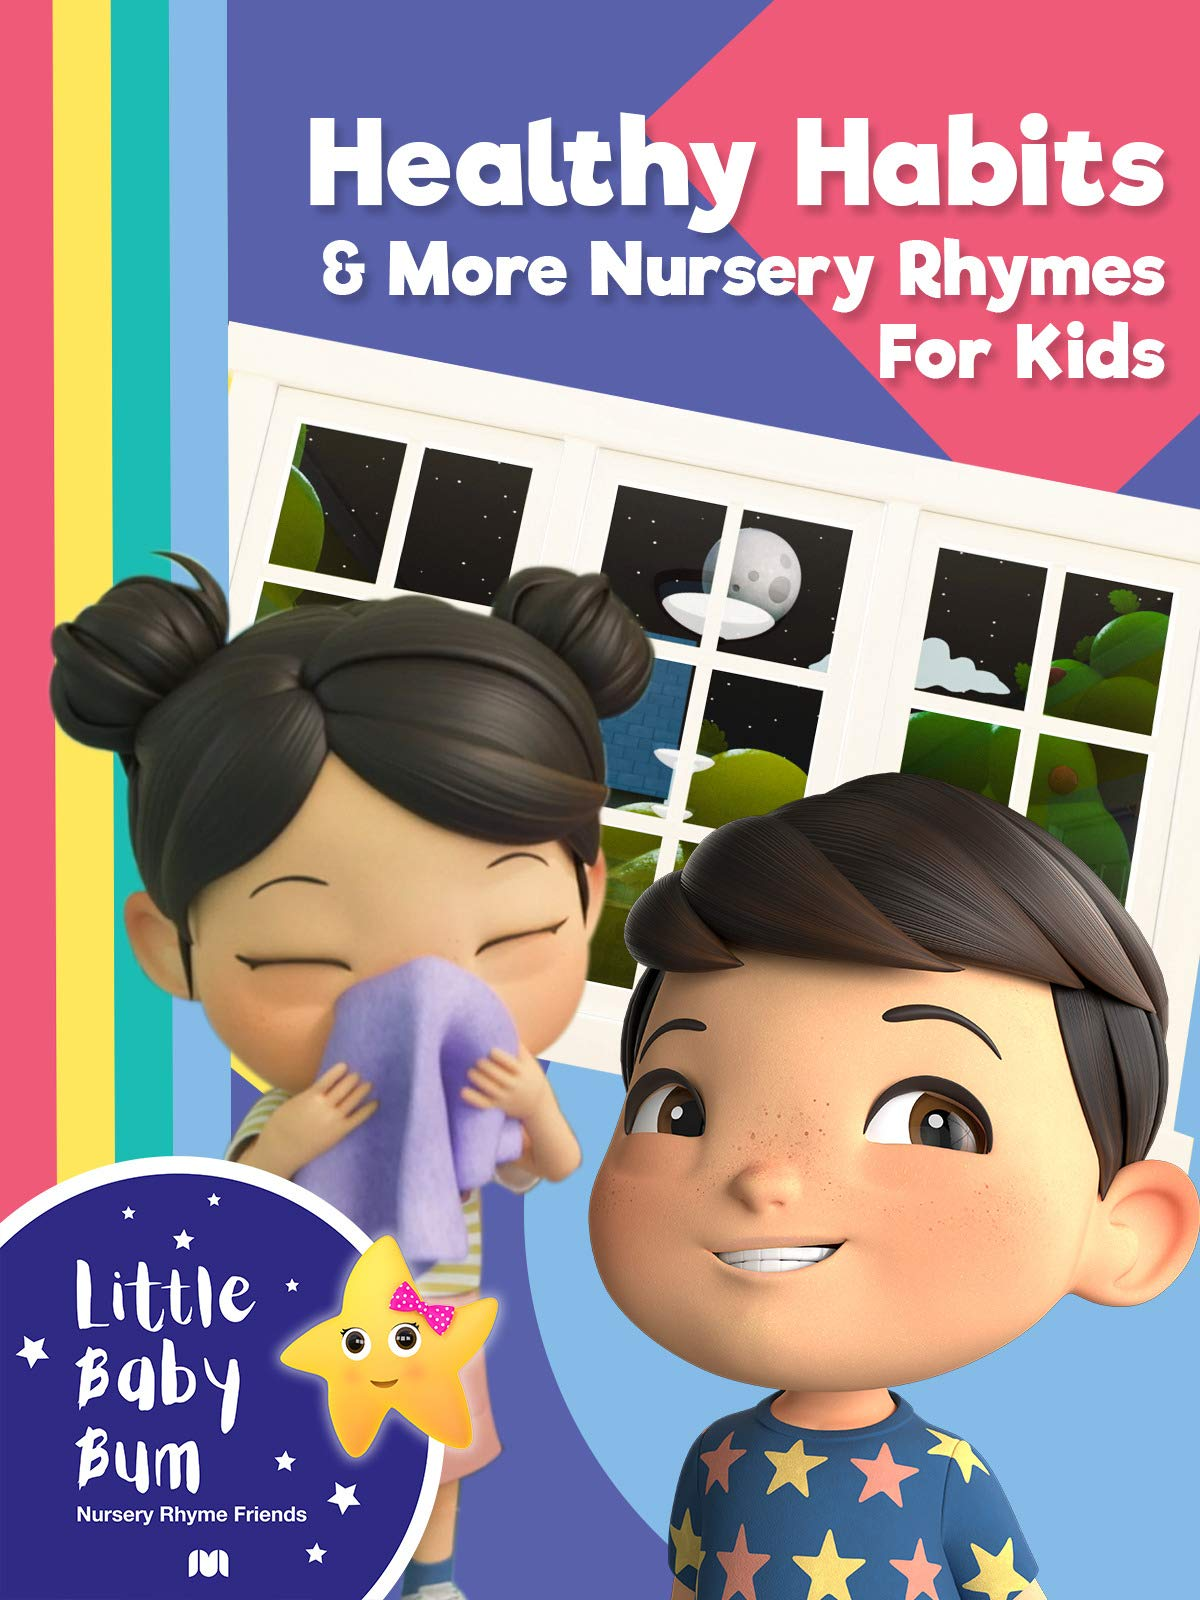 LIttle Baby Bum - Healthy Habits & More Nursery Rhymes for Kids